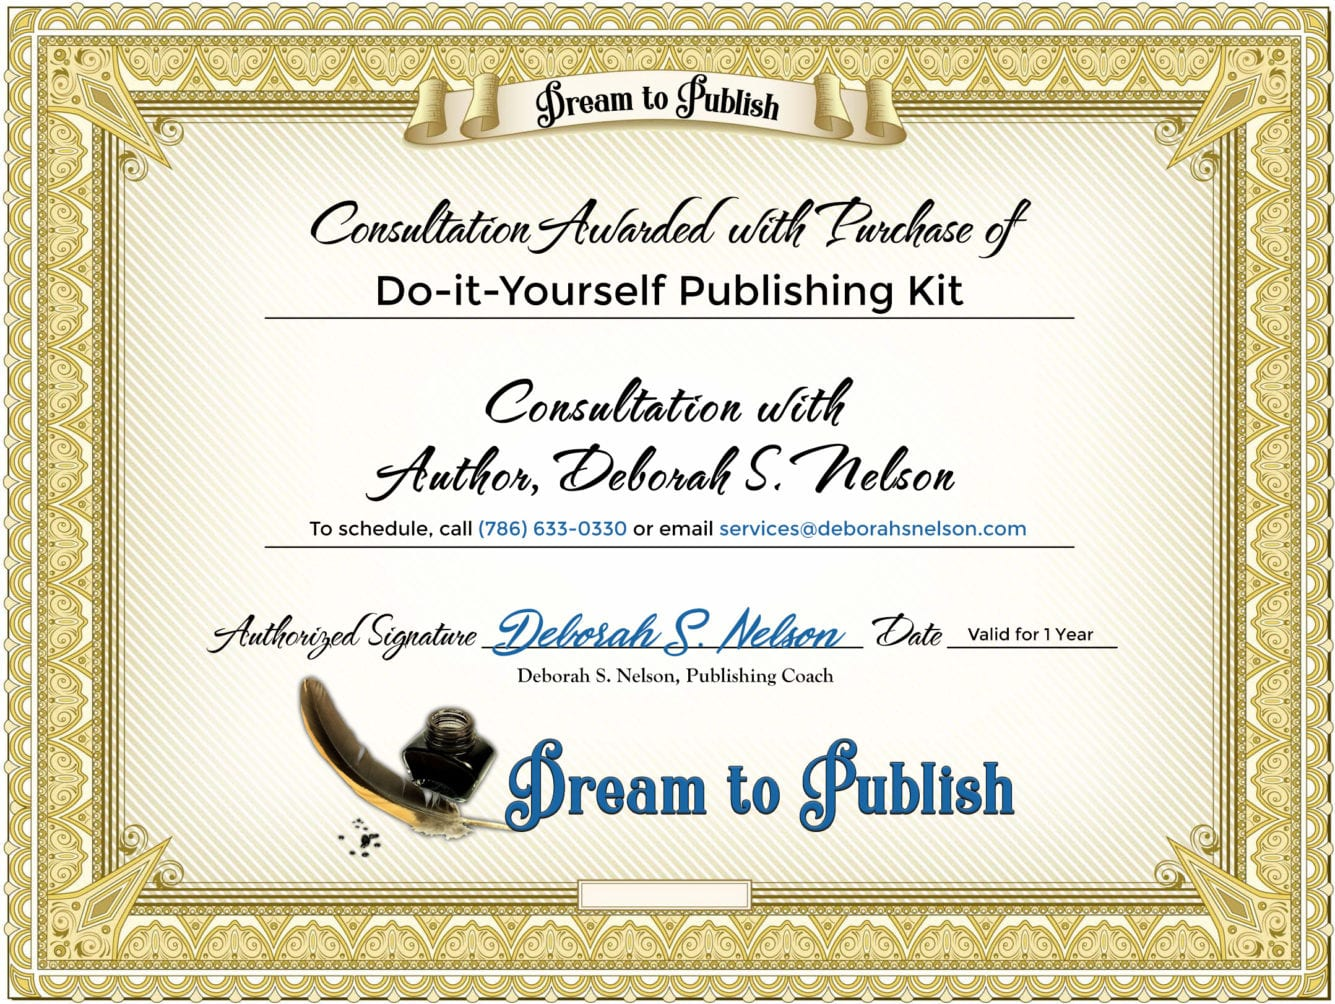 Do-it-Yourself Publishing Kit Certificate